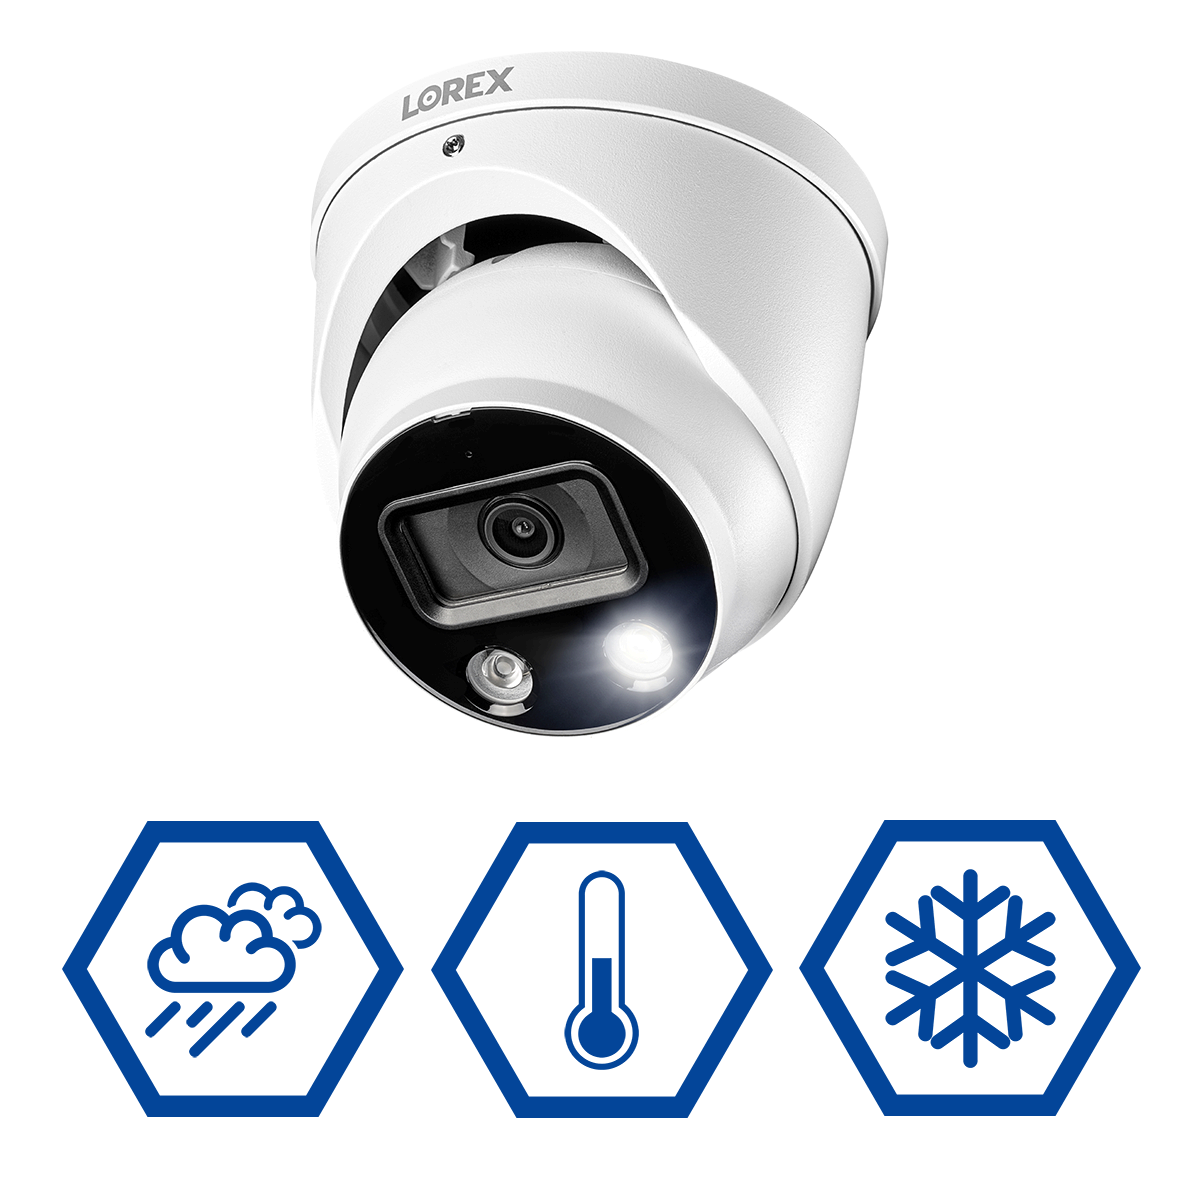 weatherproof 4K IP active deterrence smart security camera for year-round protection